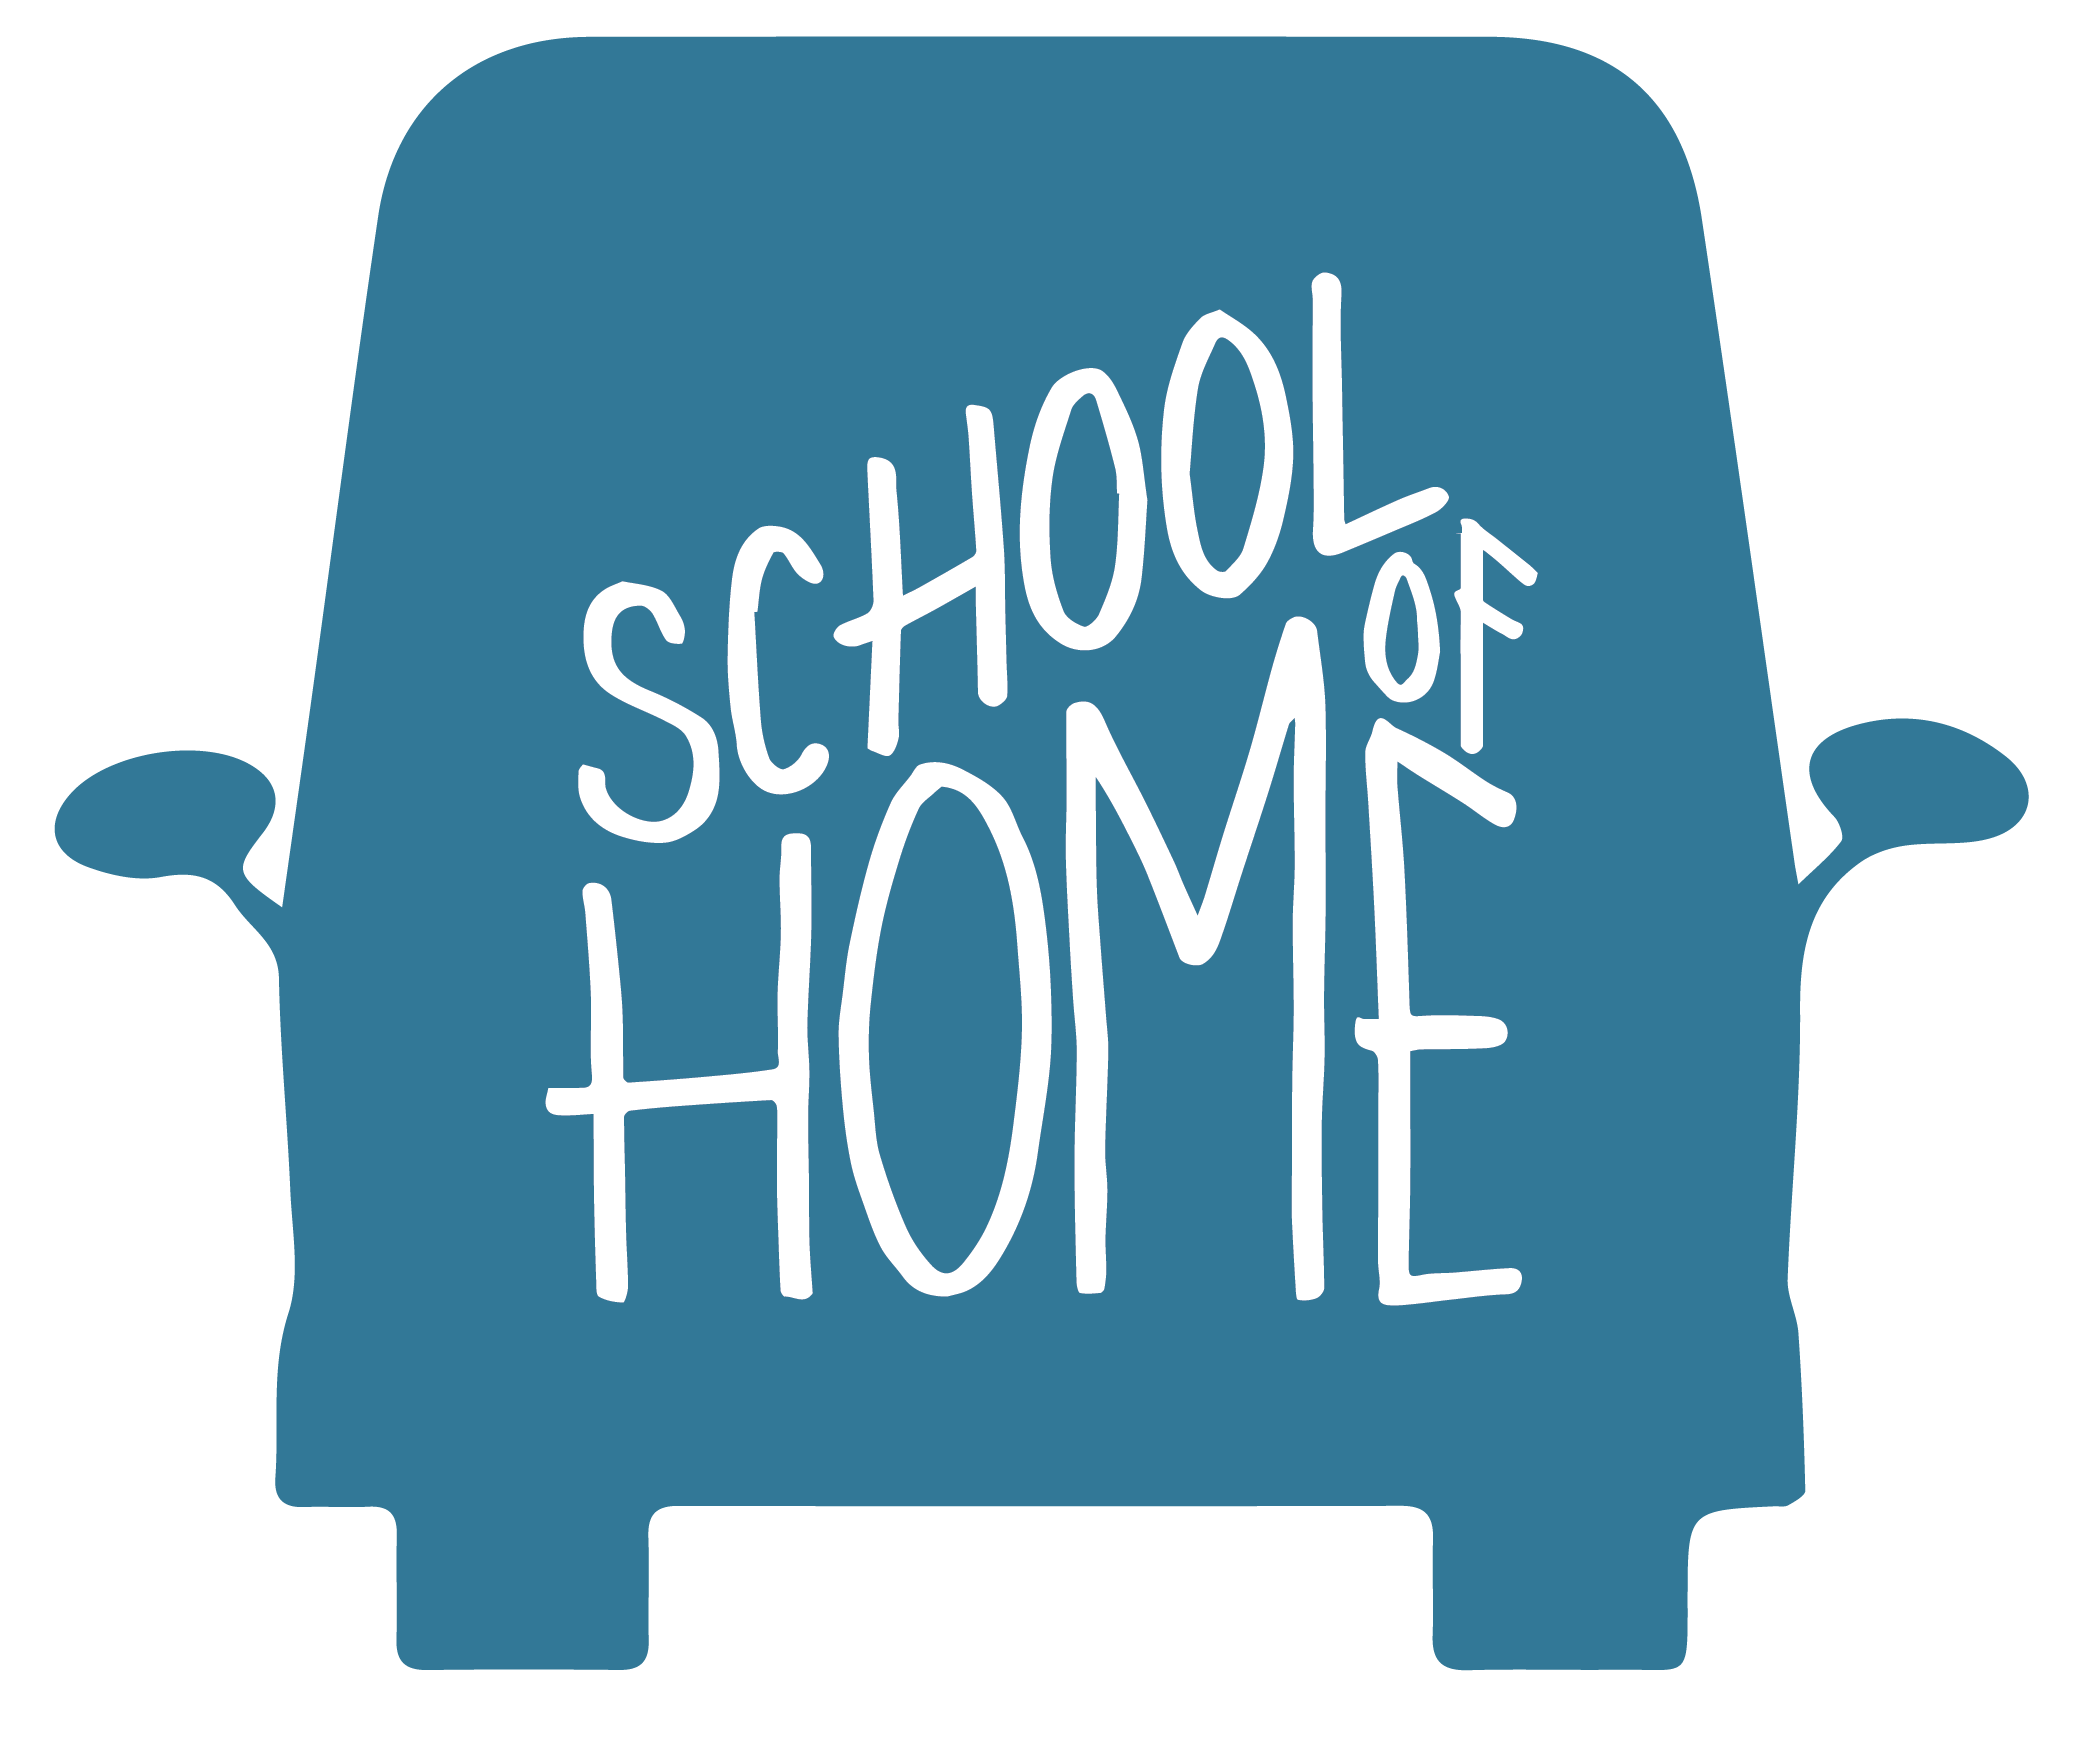 The School of Home Blog